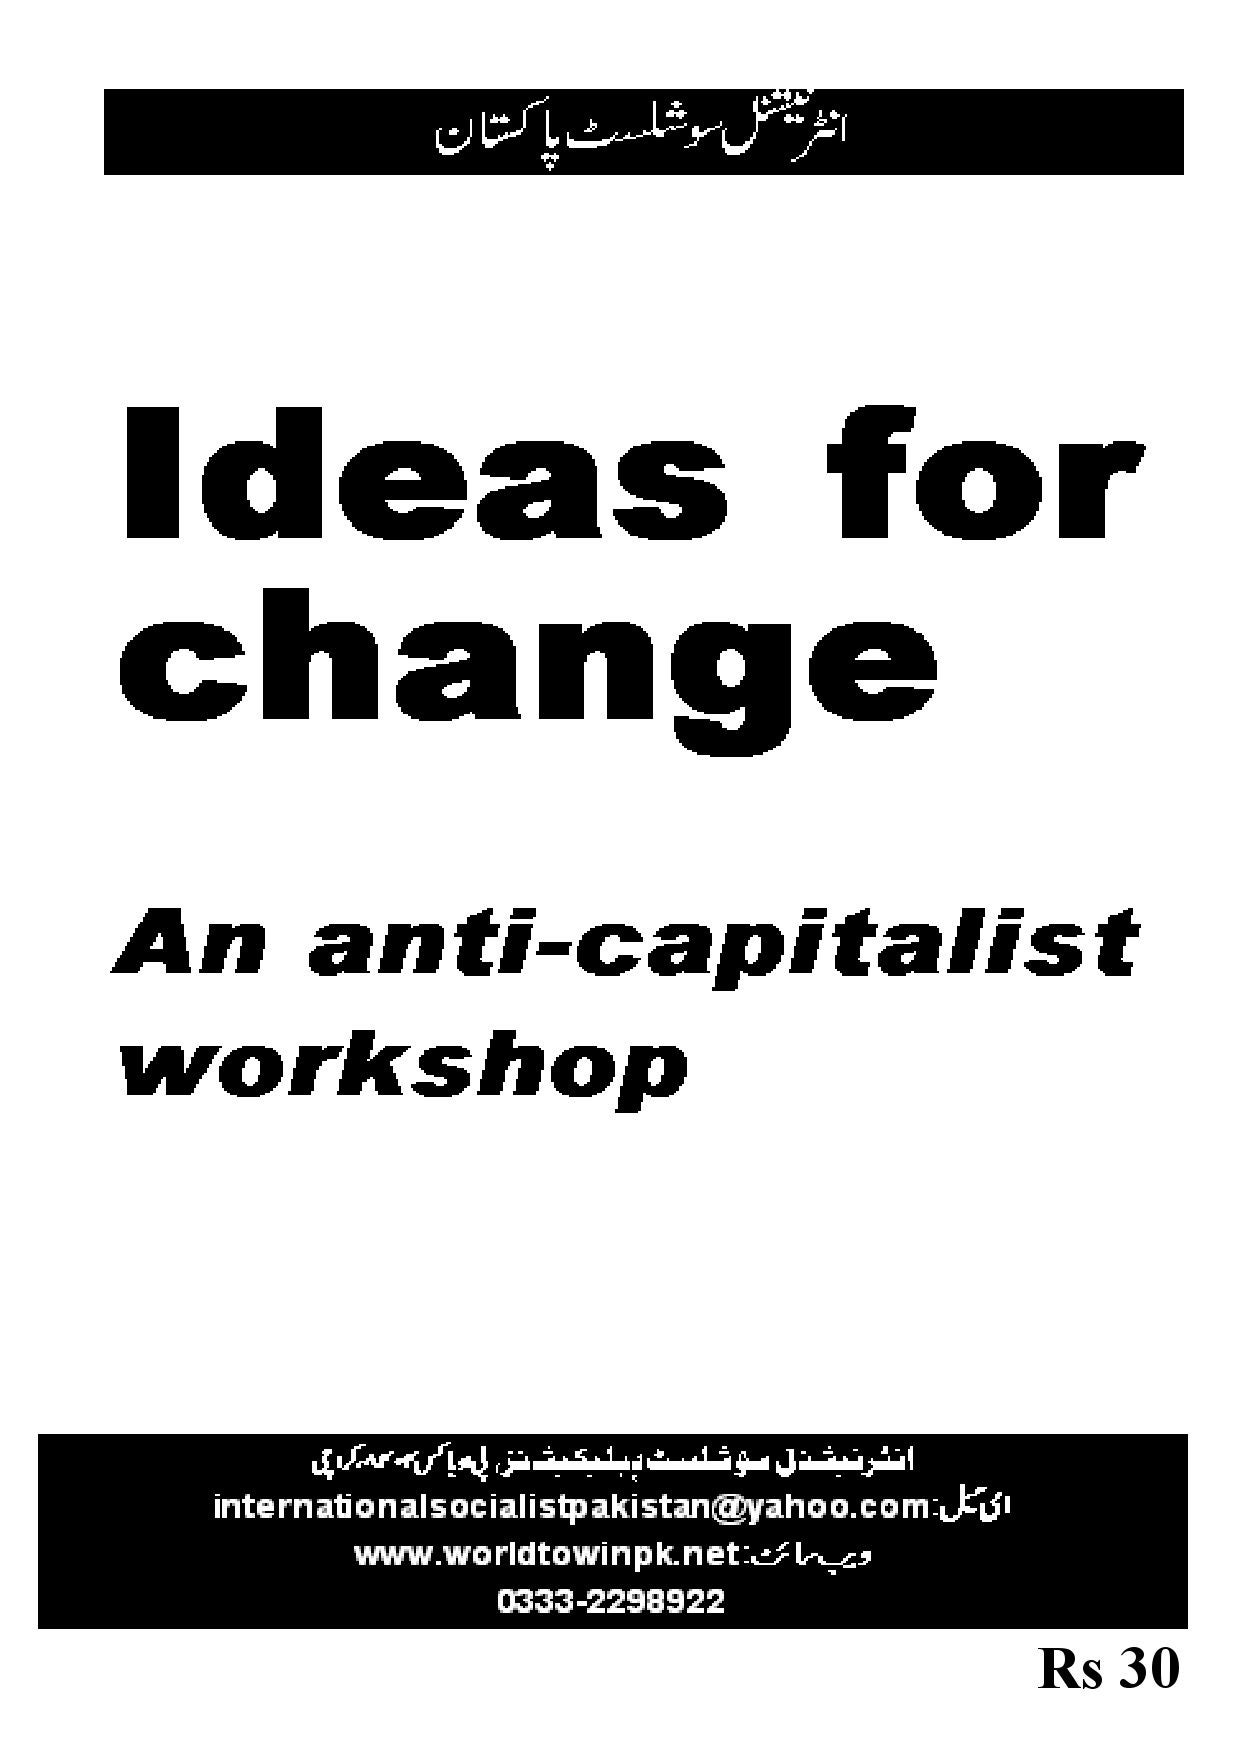 Ideas for change - an anti cap workshop by Revolutionary Socialists